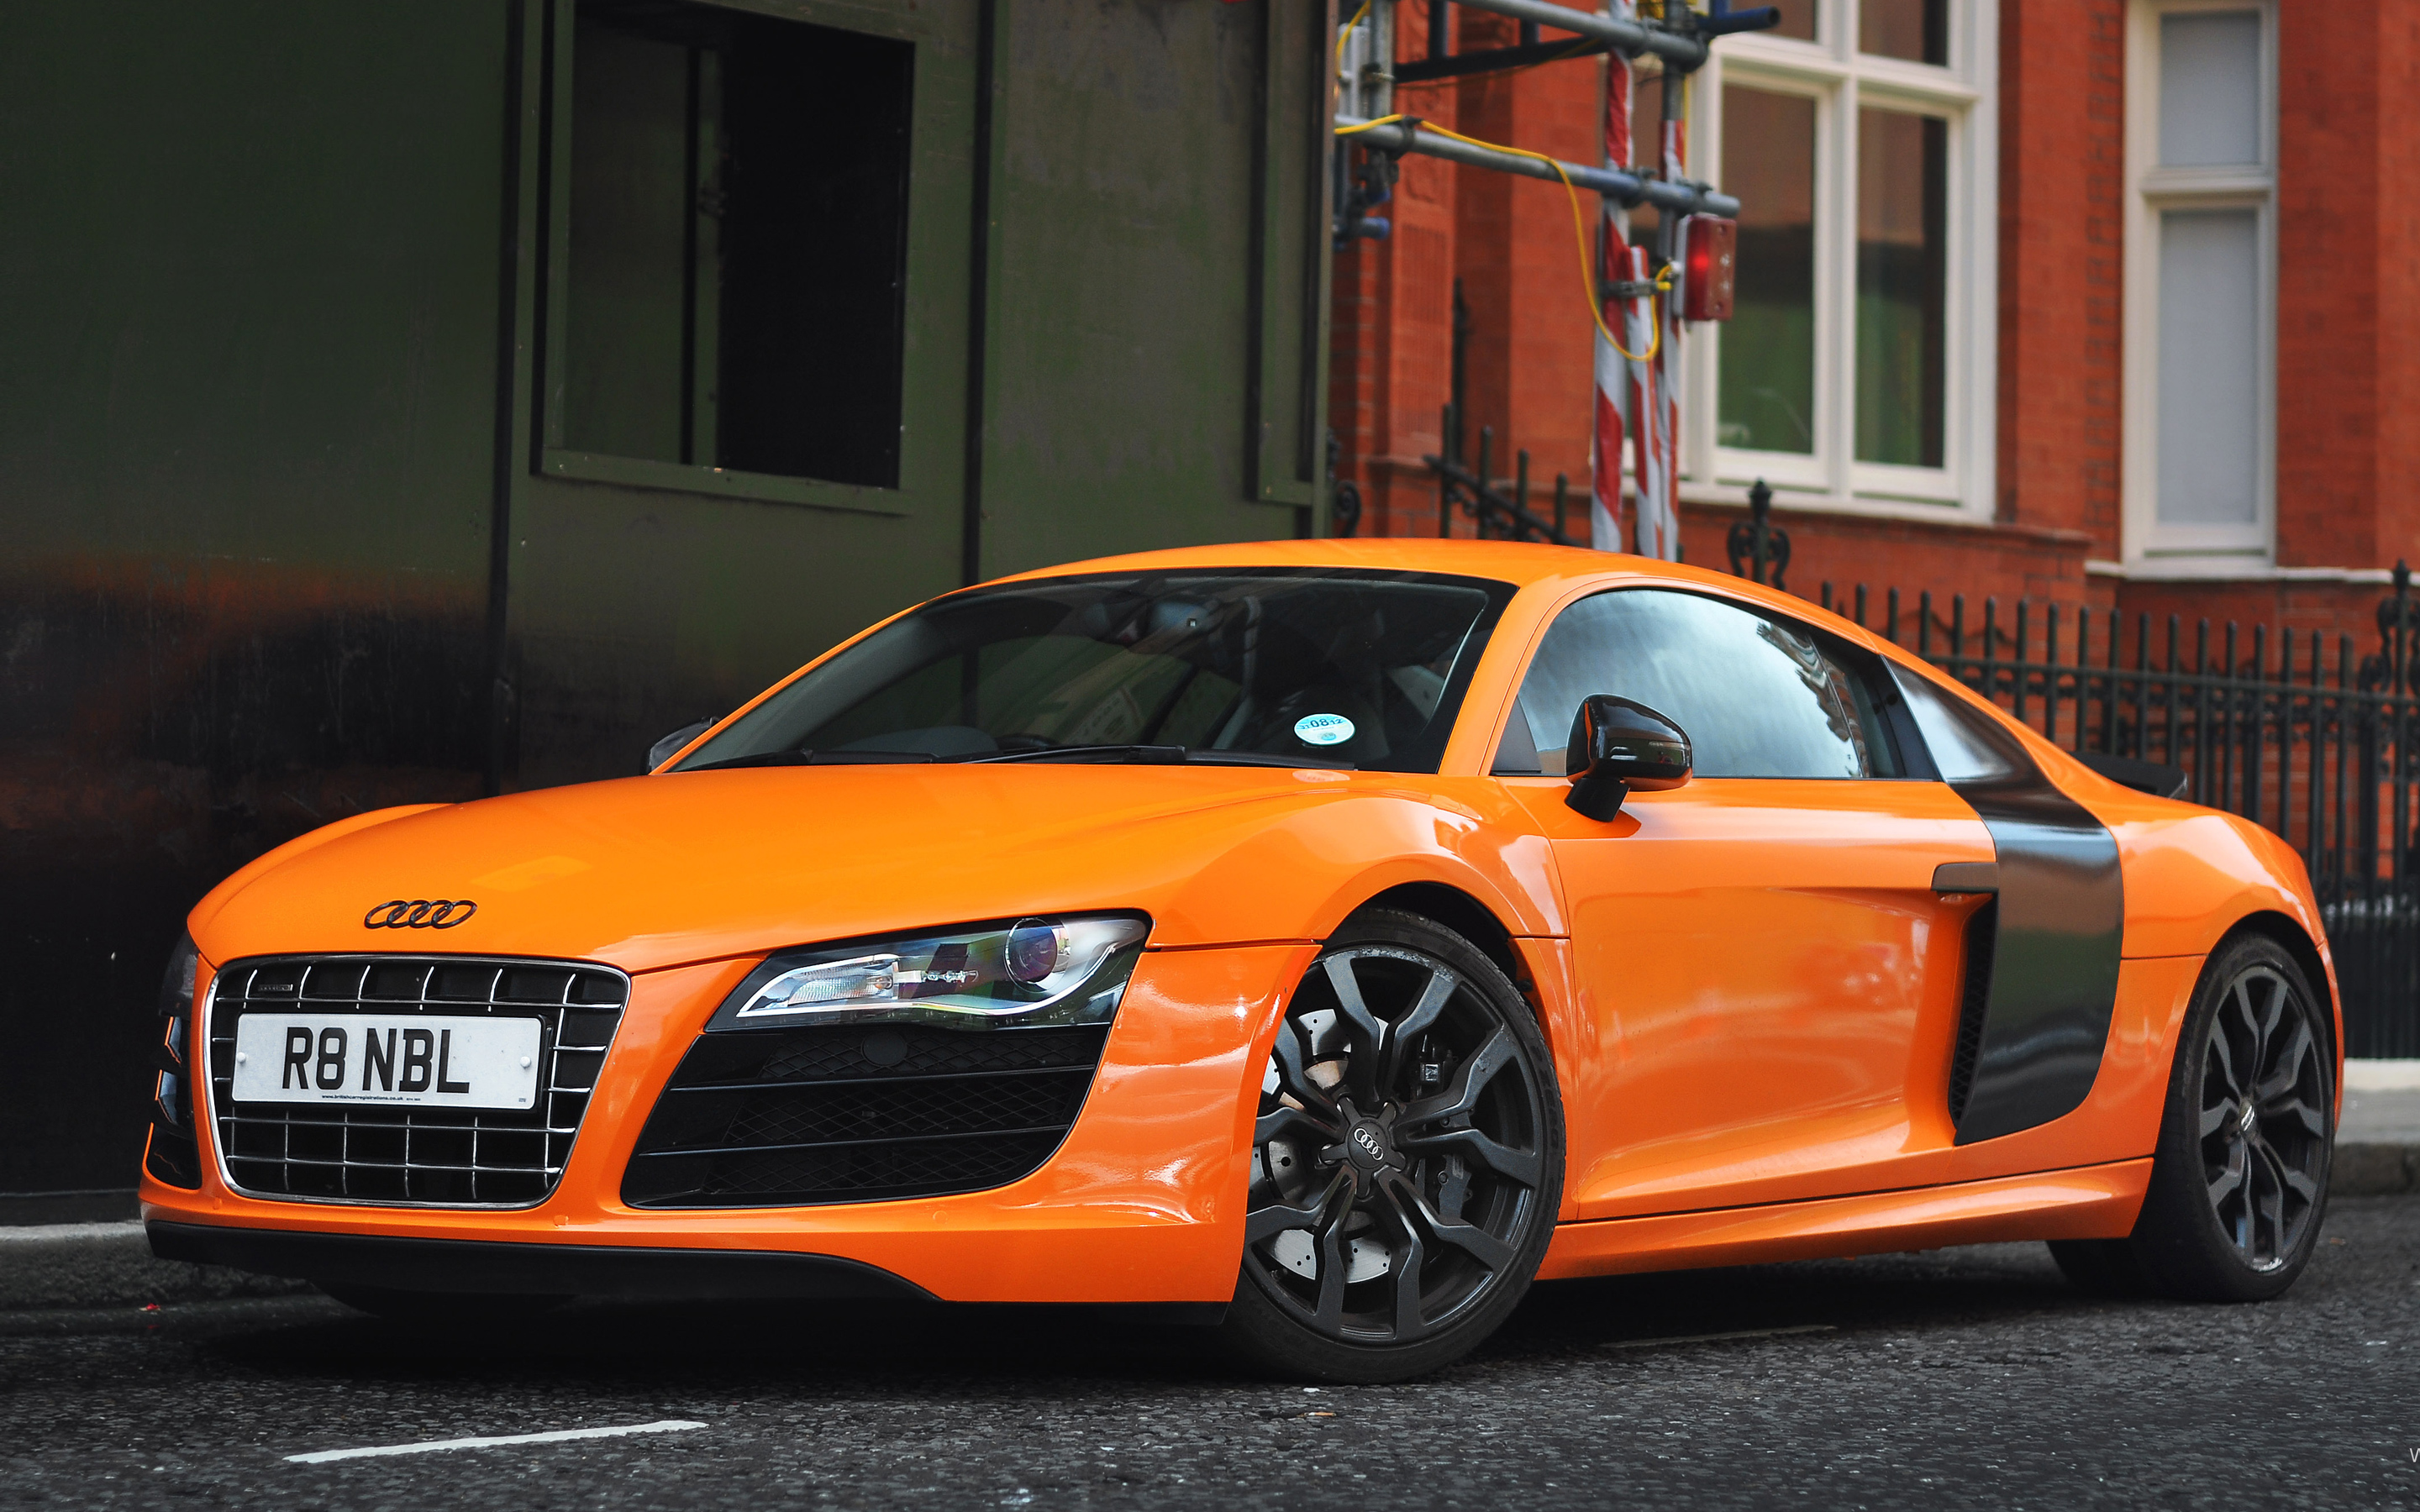 Orange Audi R8 Wallpaper Hd Car Wallpapers Id 2978